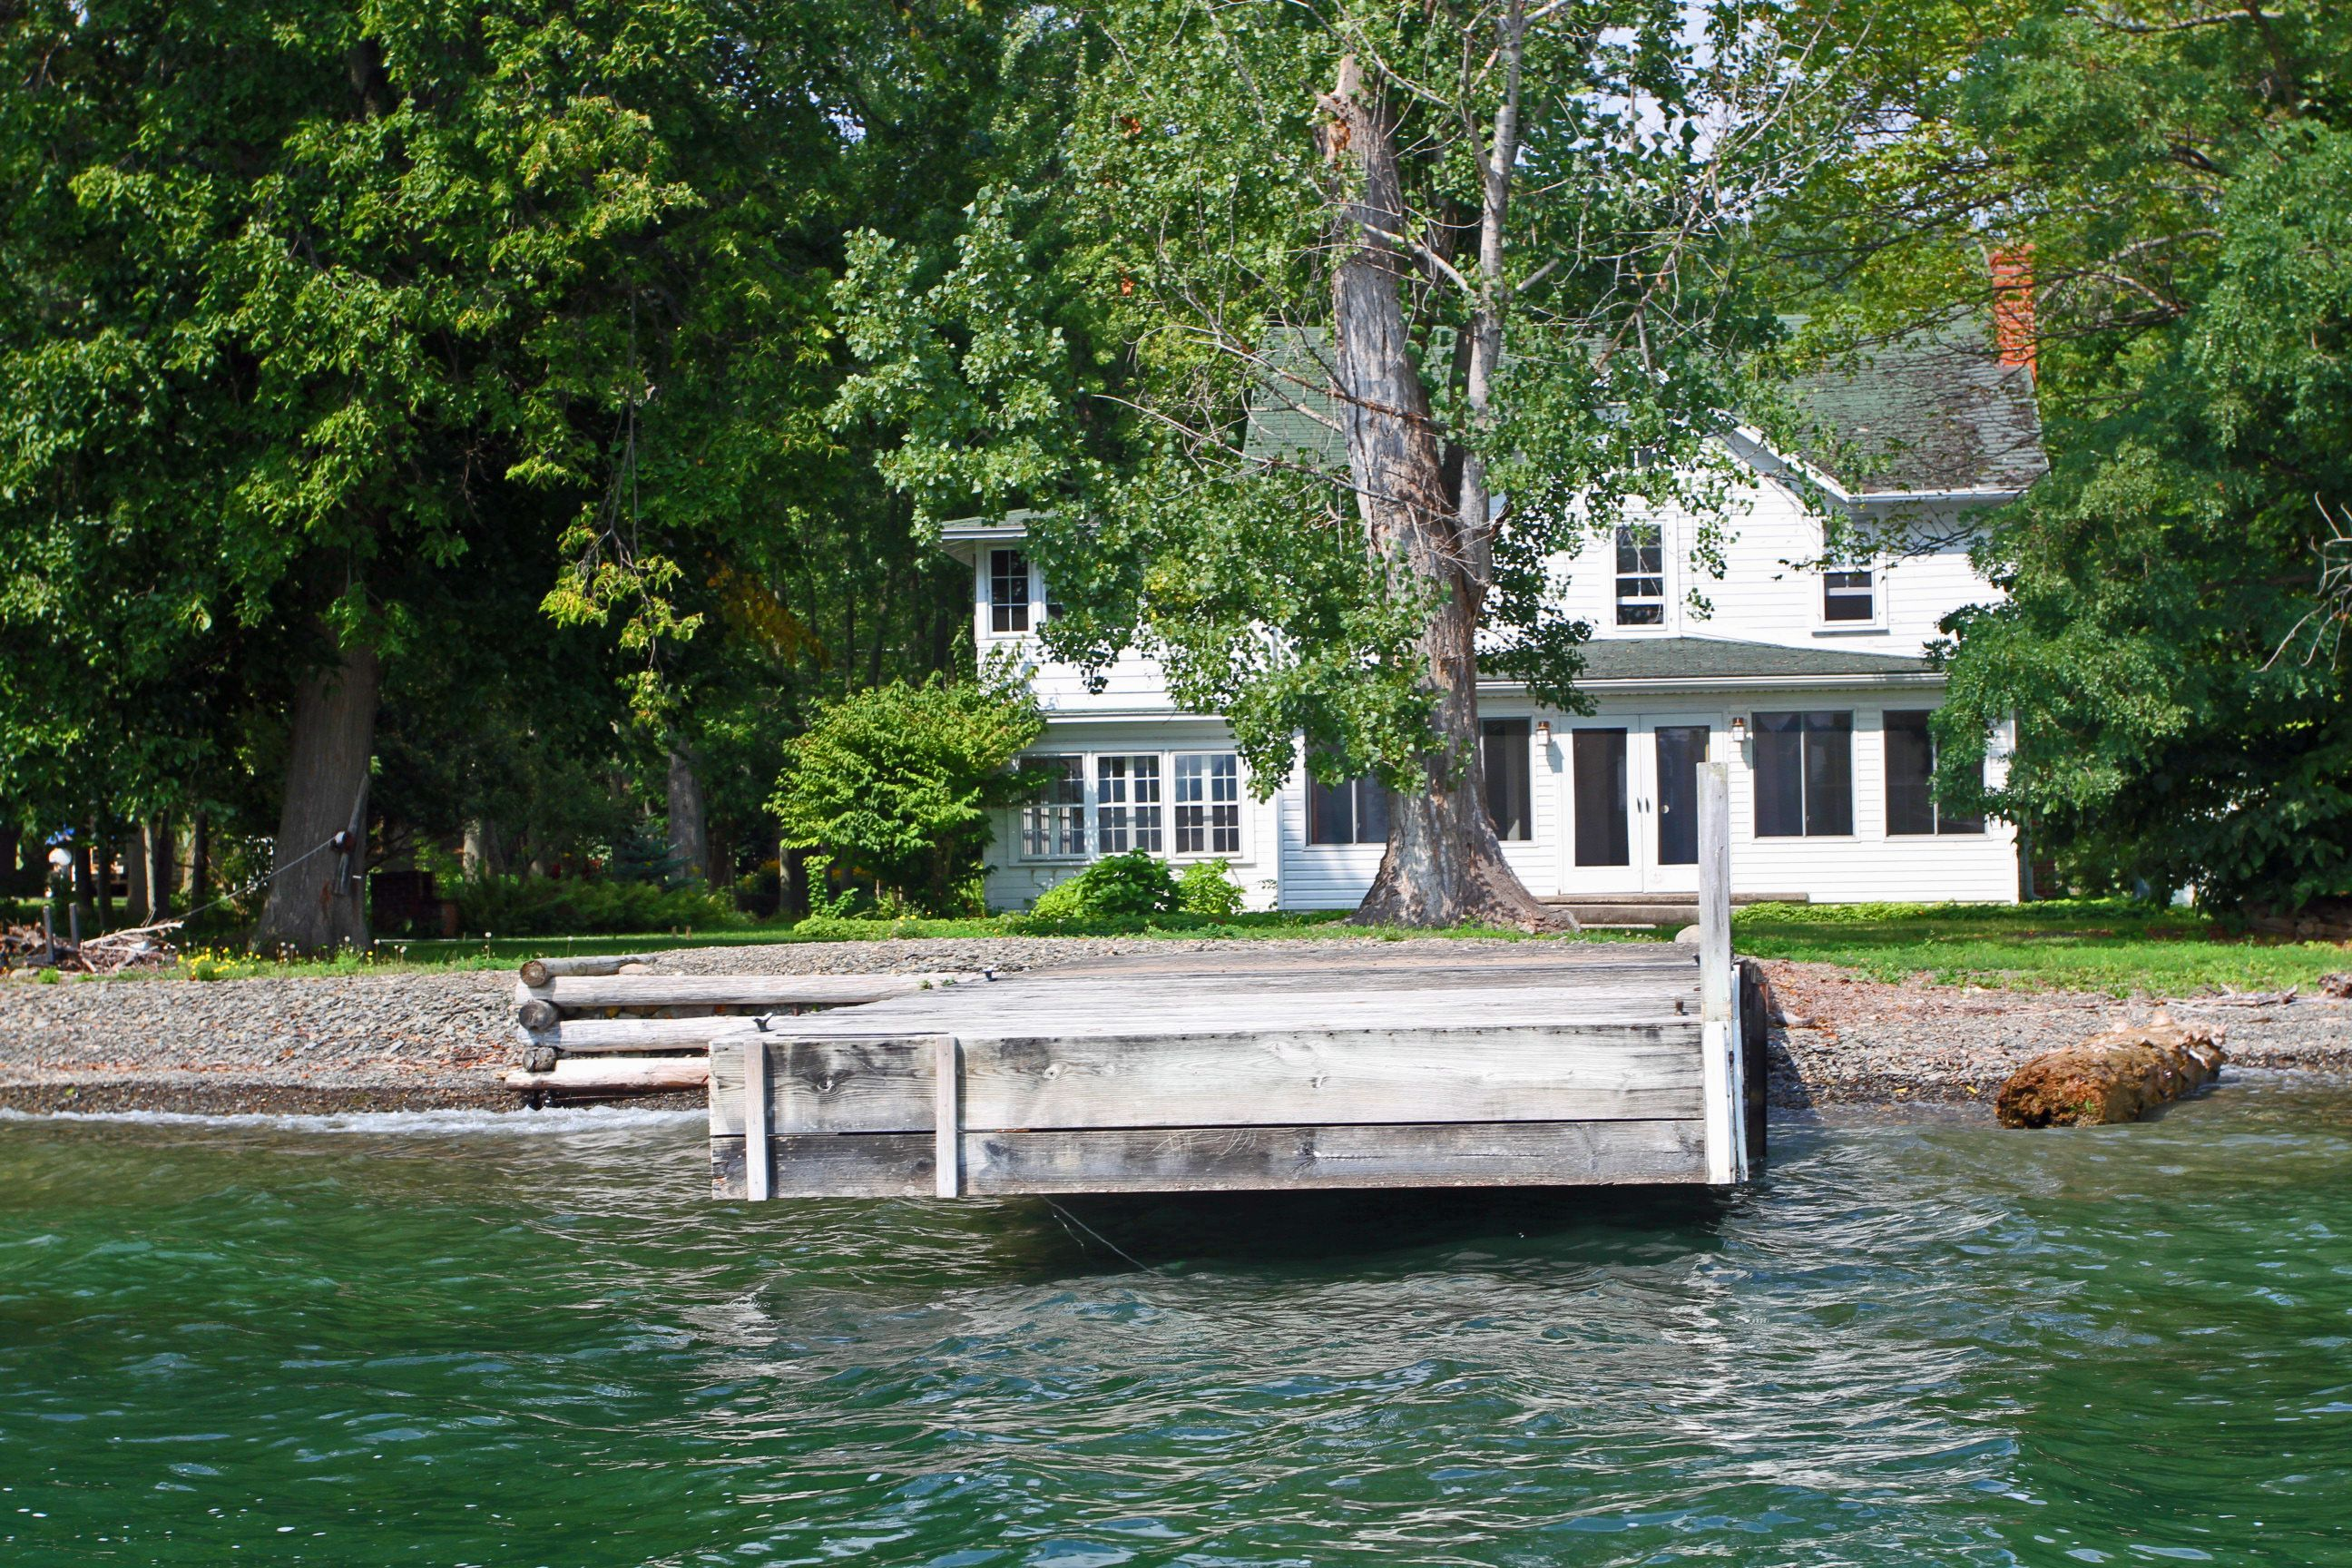 michigan the lake cabin getaway for traverse in fifelakemi rent lakeside cottages resort city rentals front vacation northern mainhouse cottage